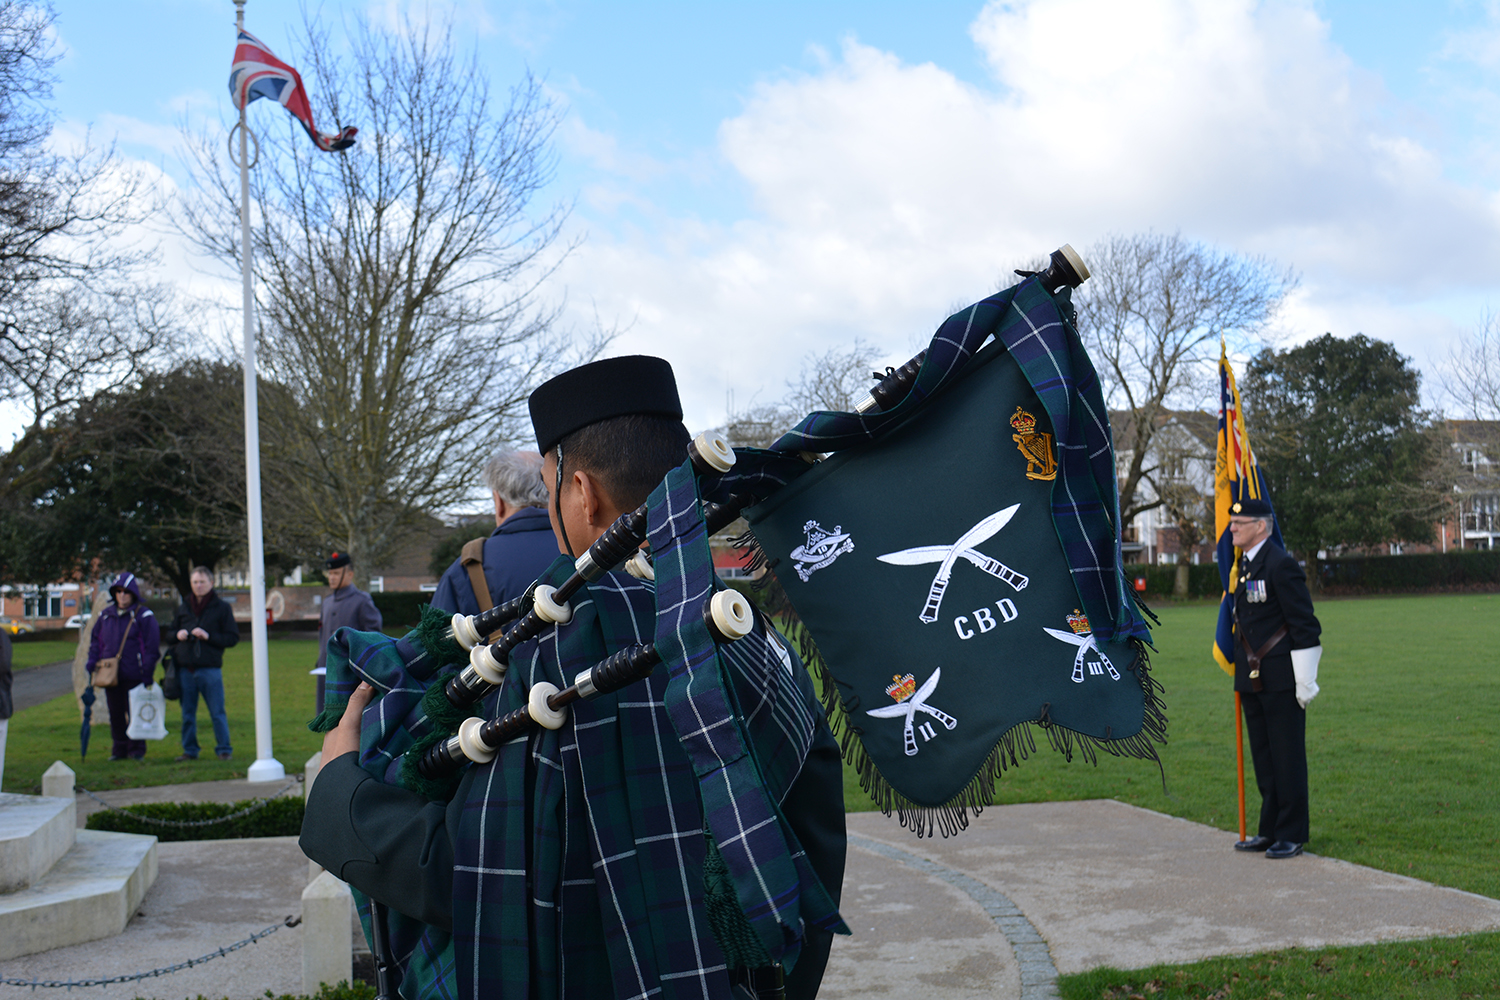 Piper at the Gurkhas at the New Milton memorial to Major George Campbell VC